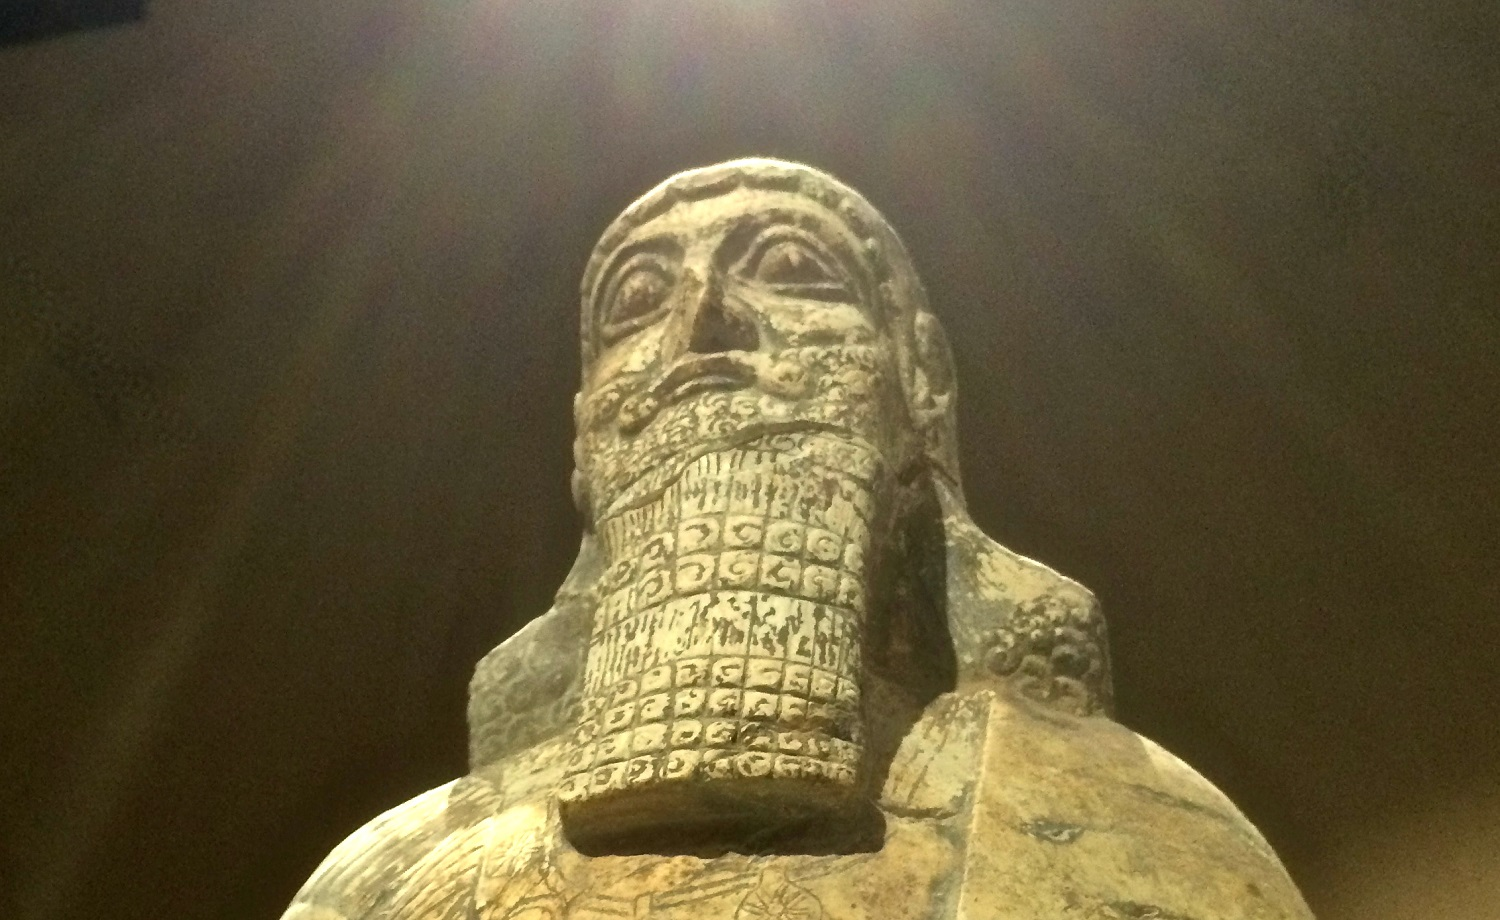 A statue of Shalmaneser, an Assyrian ruler, stolen in 2003 and returned from the US to Iraq (Tom Westcott/MEE)